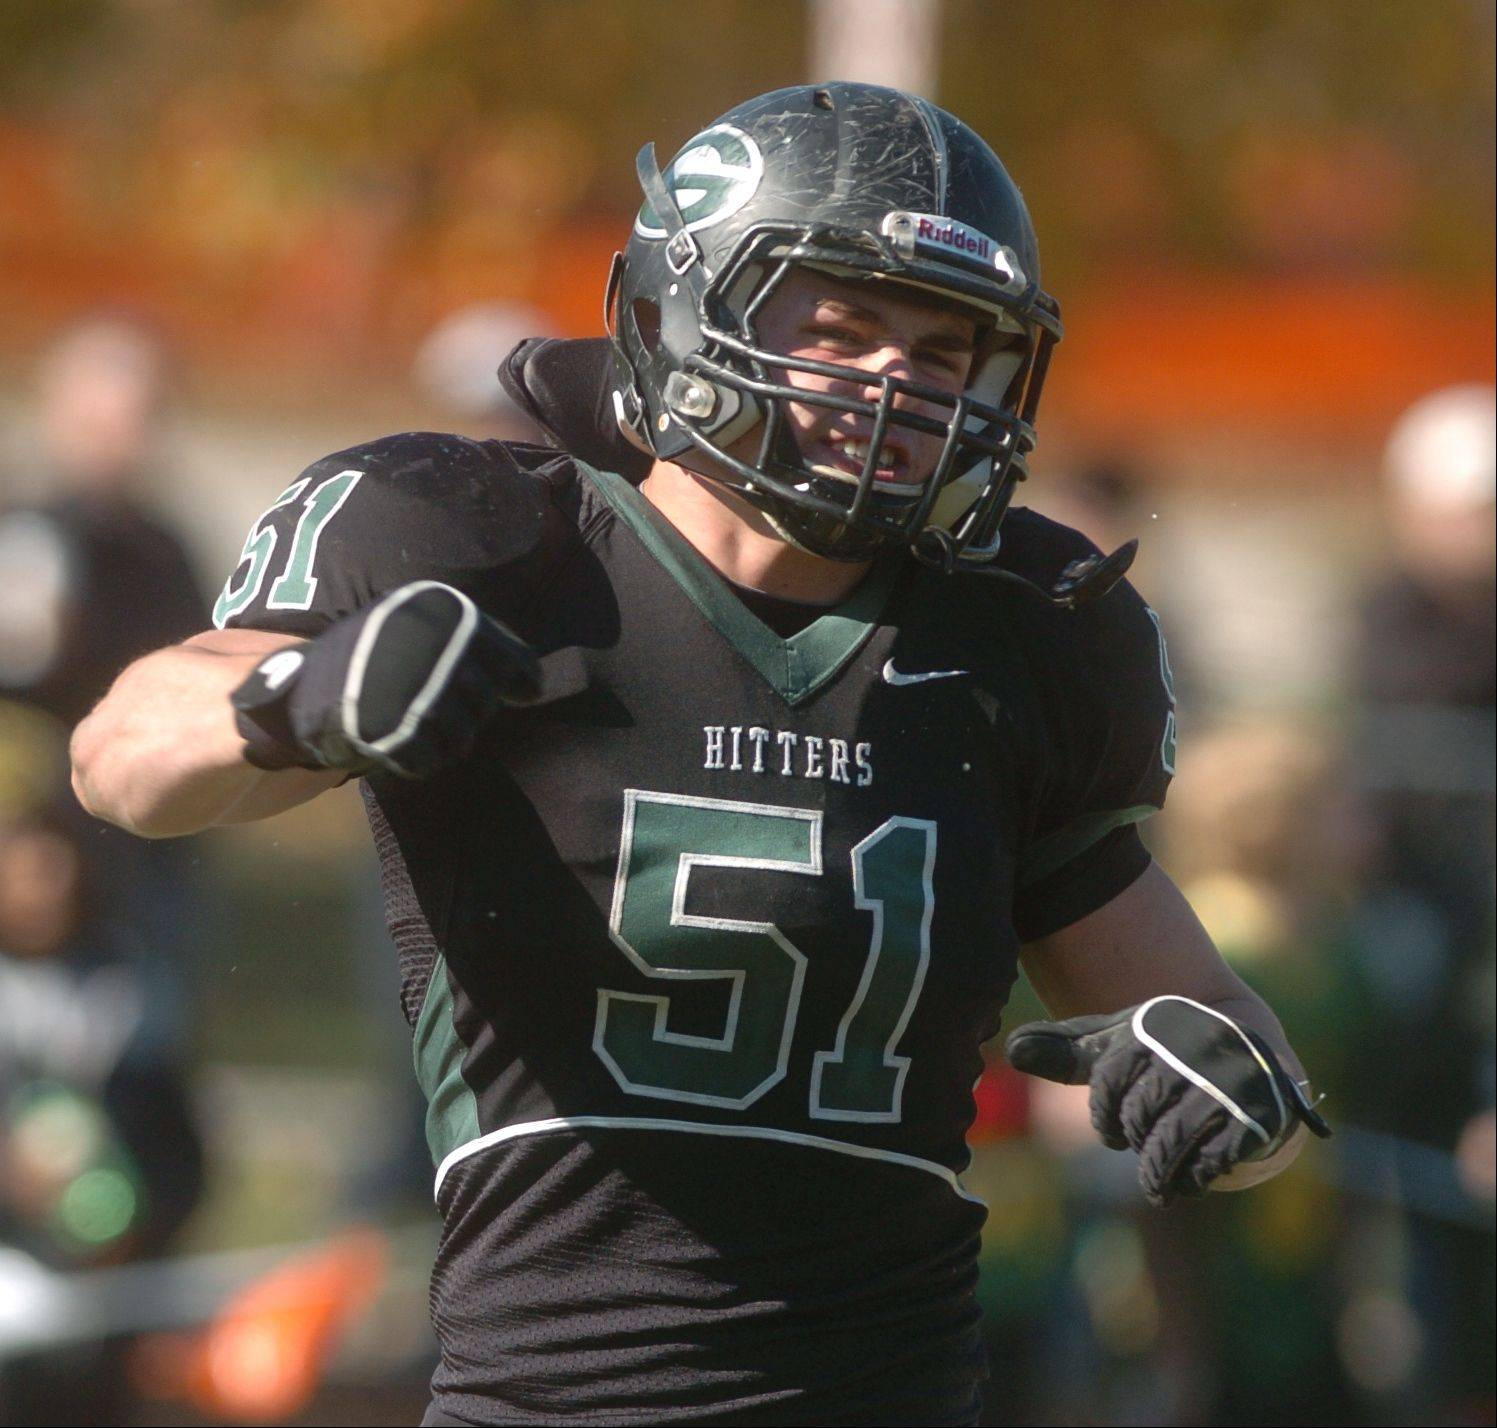 Glenbard West hosted Elk Grove High School in Week 1 of the IHSA Class 8A football playoffs Saturday afternoon at Glenbard West High School in Glen Ellyn.